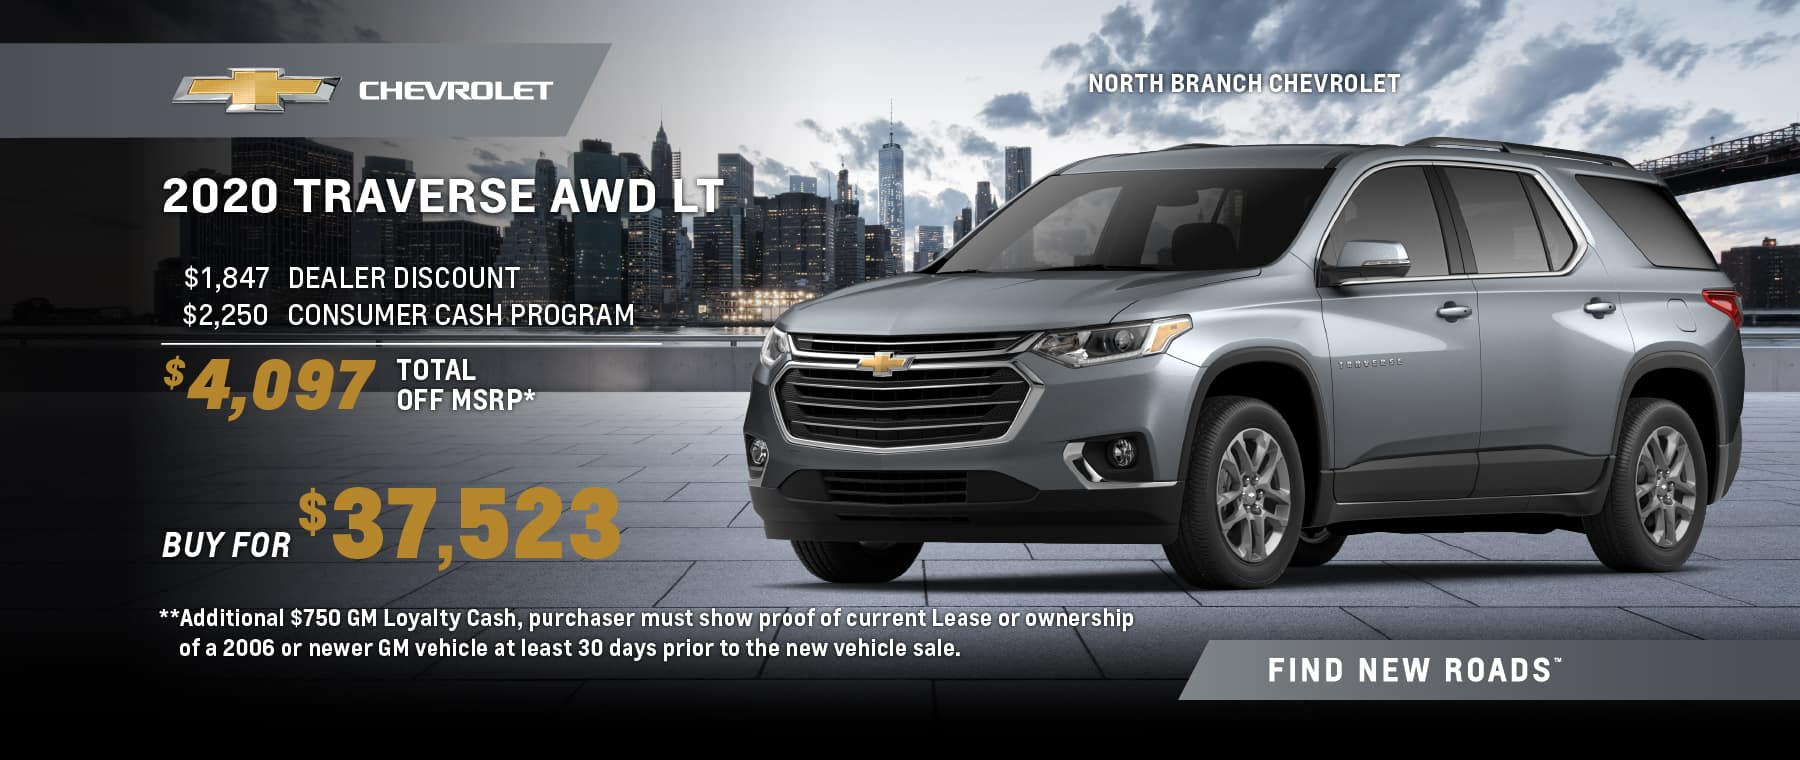 2020 CHEVROLET TRAVERSE AWD LT